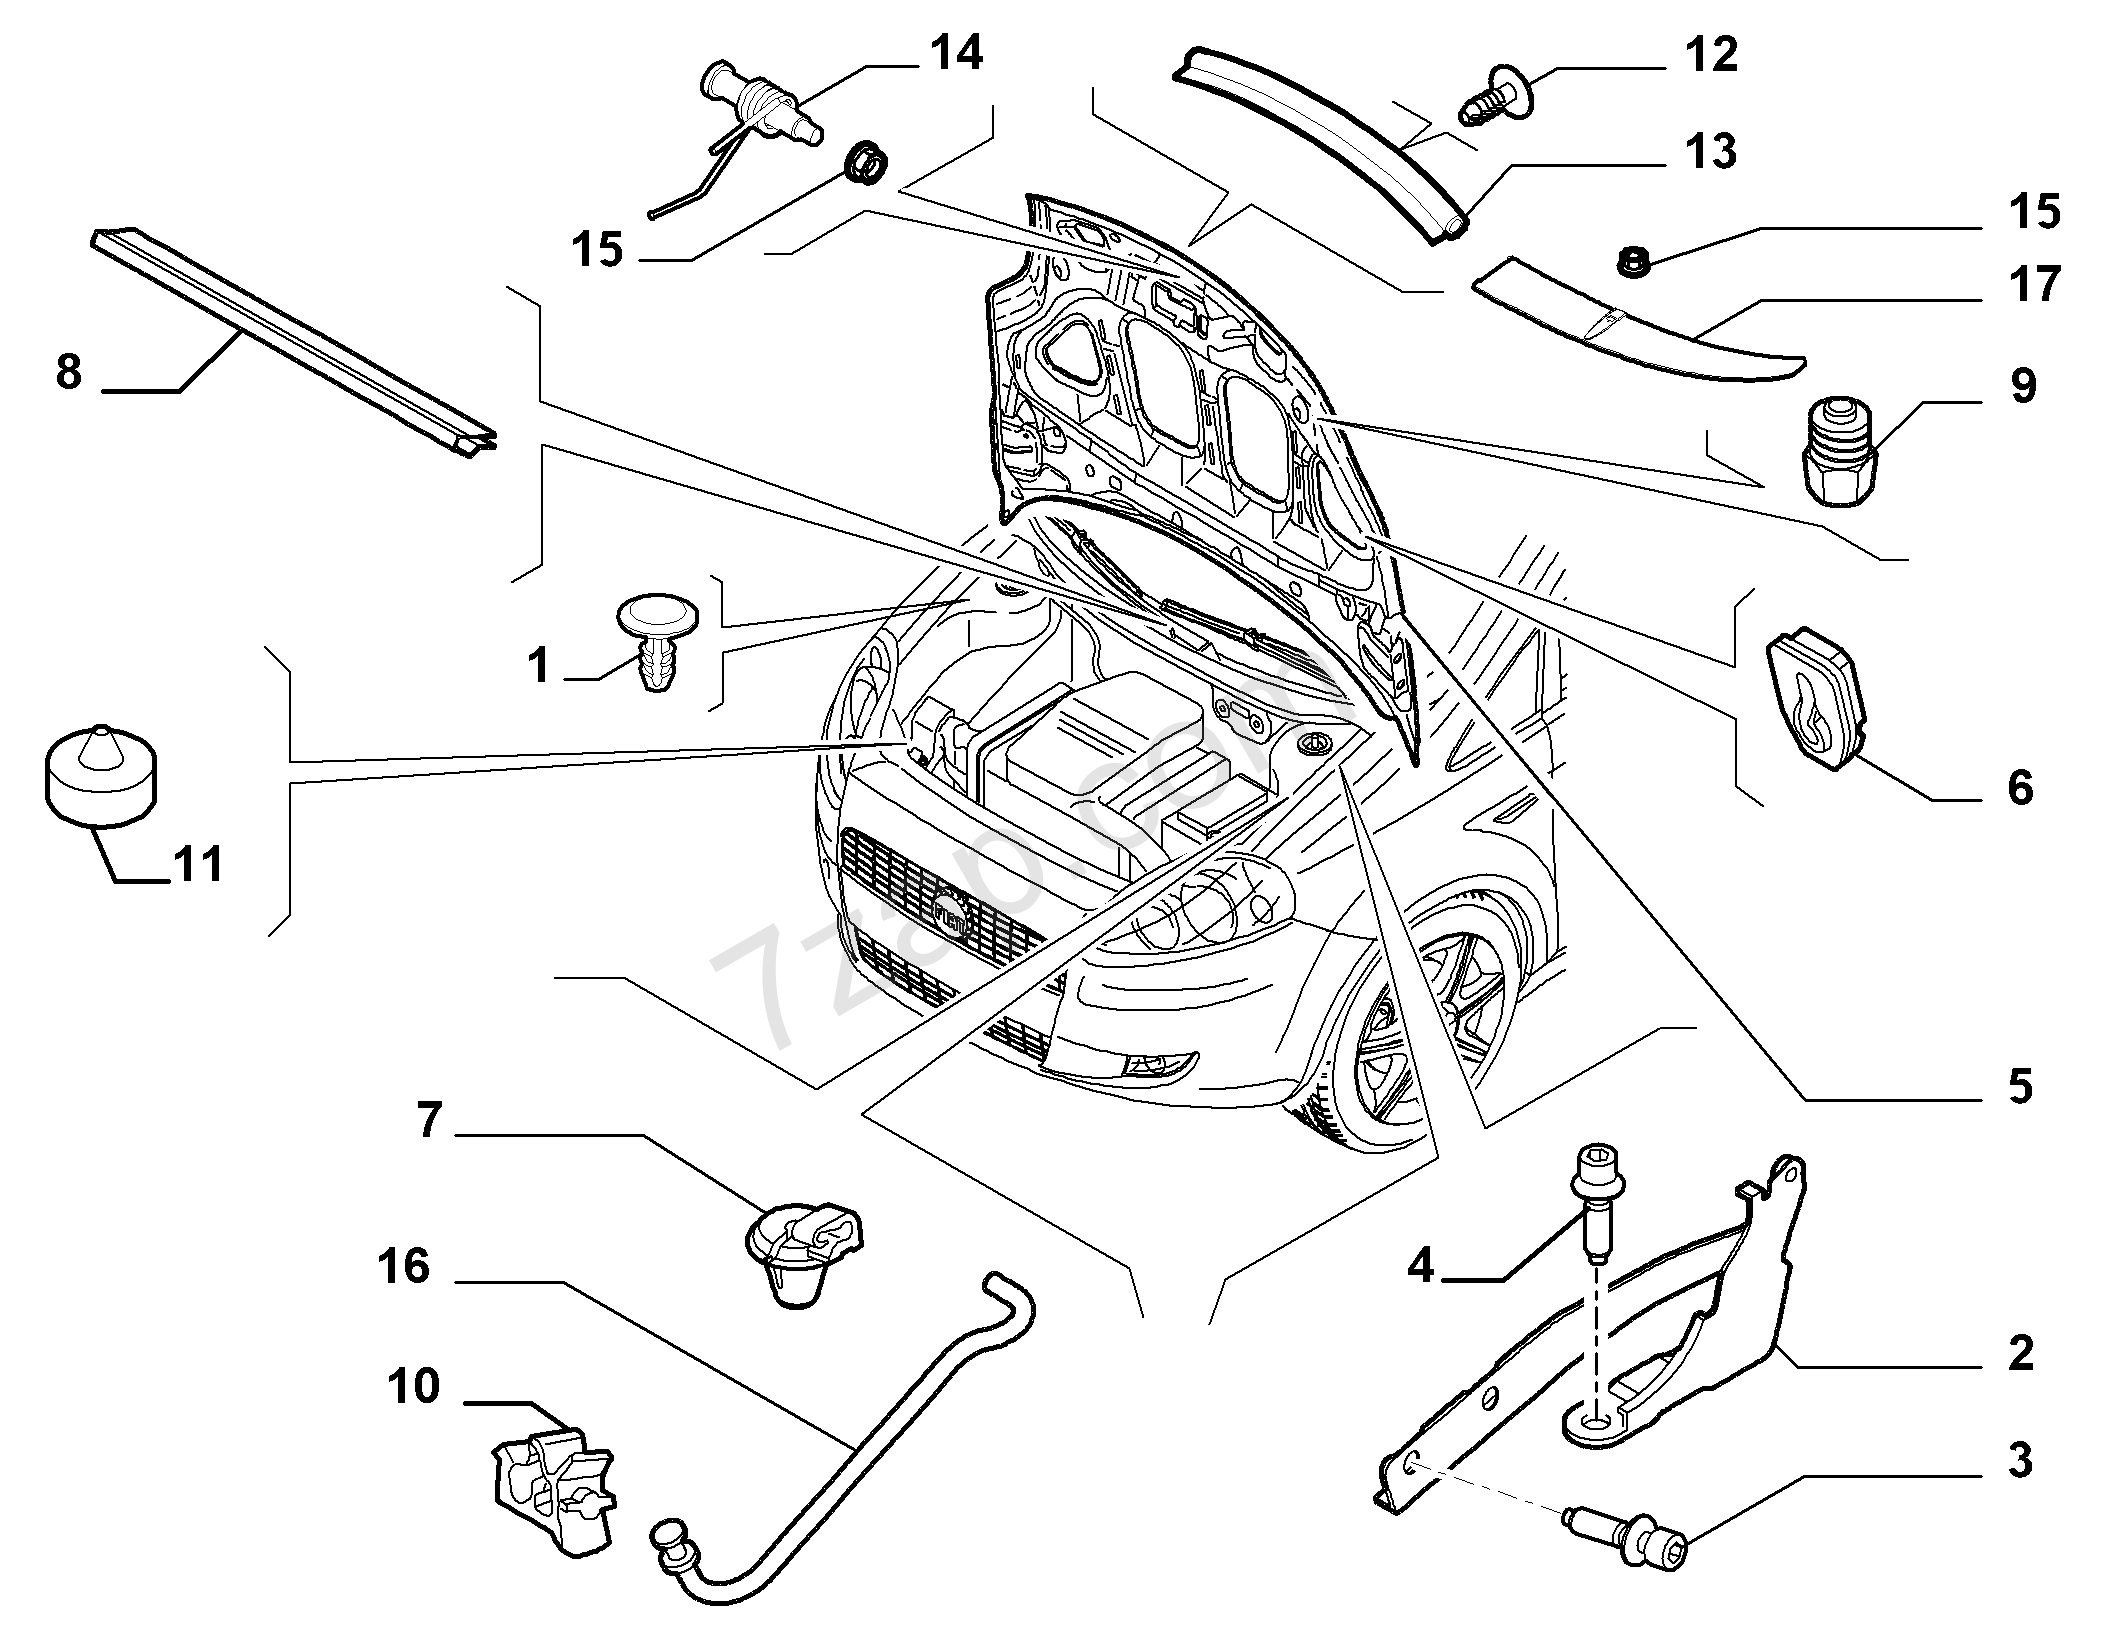 Fiat Punto Engine Bay Diagram Manual Of Wiring Grande Fuse Box Cover Compartment Lid Intern India 2008 2014 Rh 7zap Com